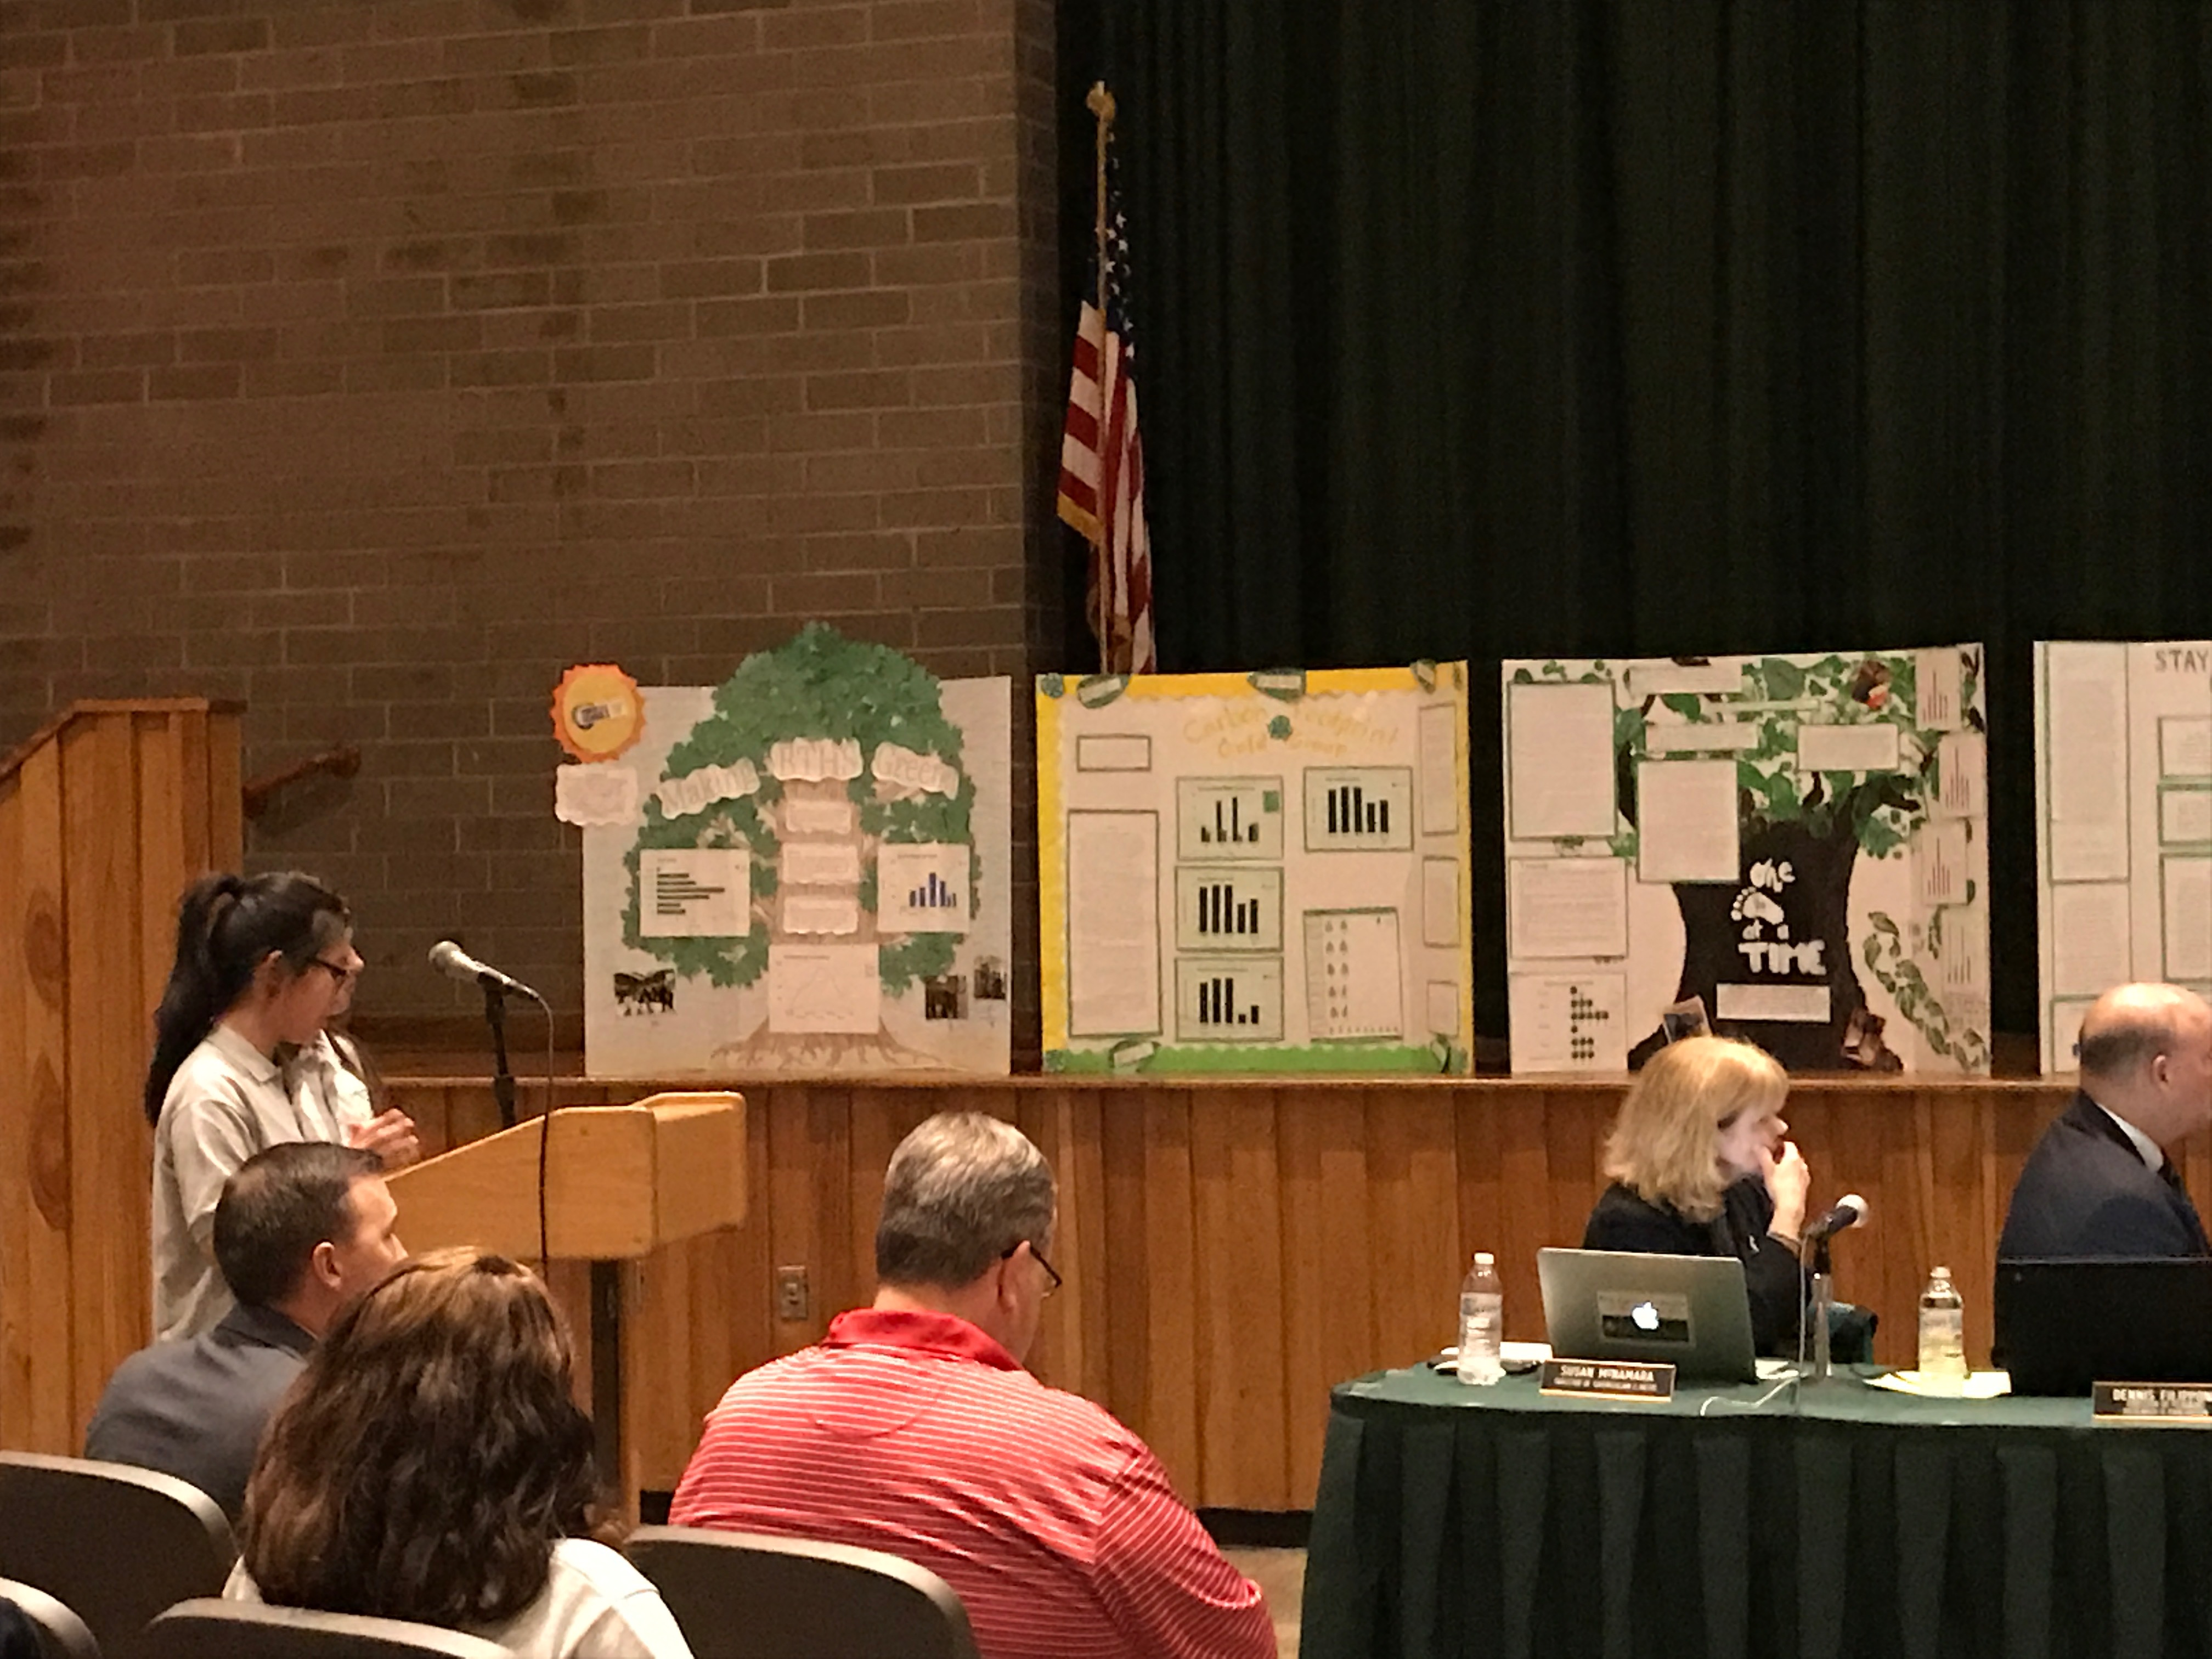 Brick STEM Academy students present their project at a Board of Education meeting. (Photo: Daniel Nee)